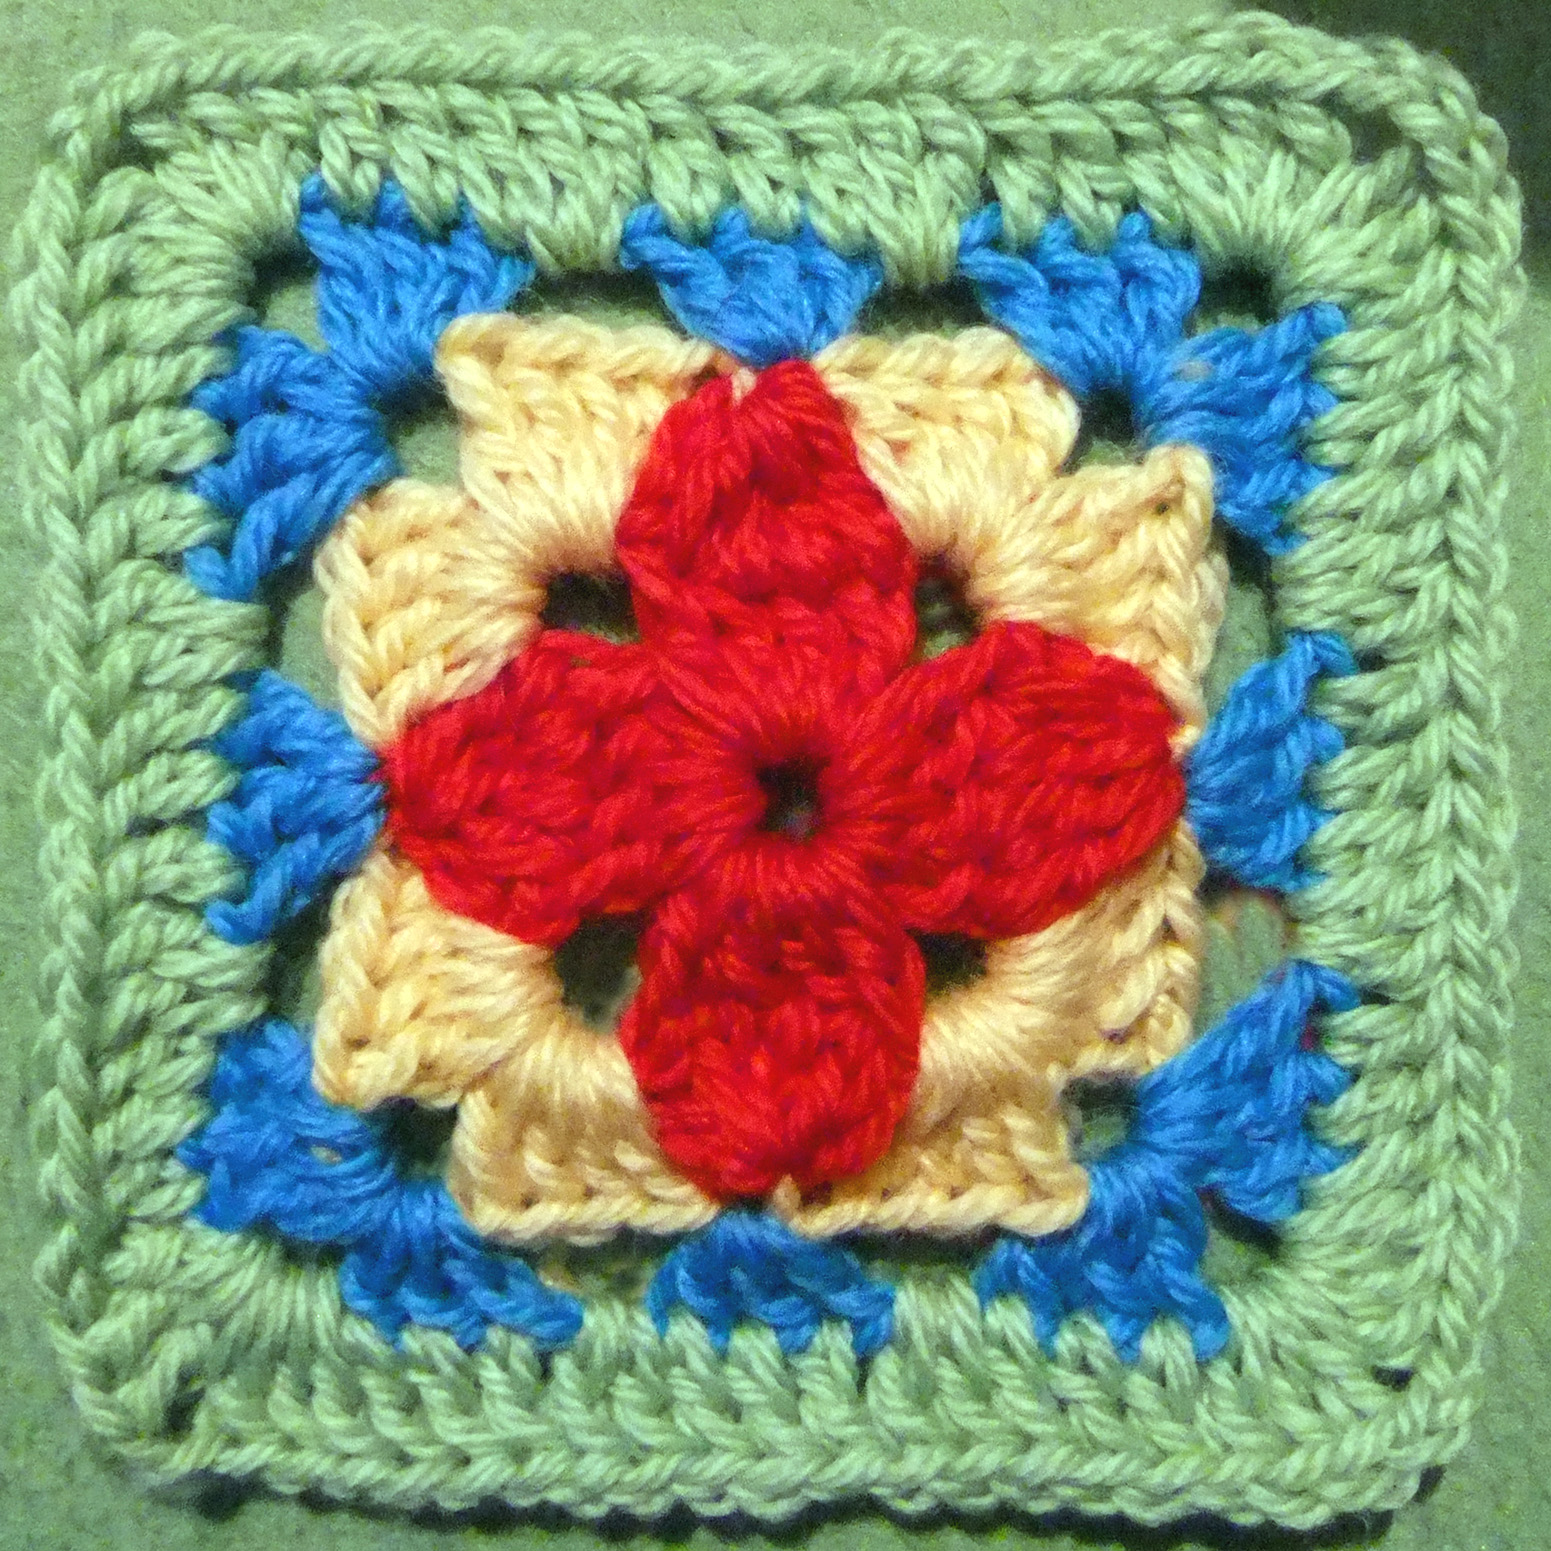 Crochet Pattern Central Free Online Crochet Stitch Directory : AFGHAN CROCHET HOOK PATTERNS Patterns